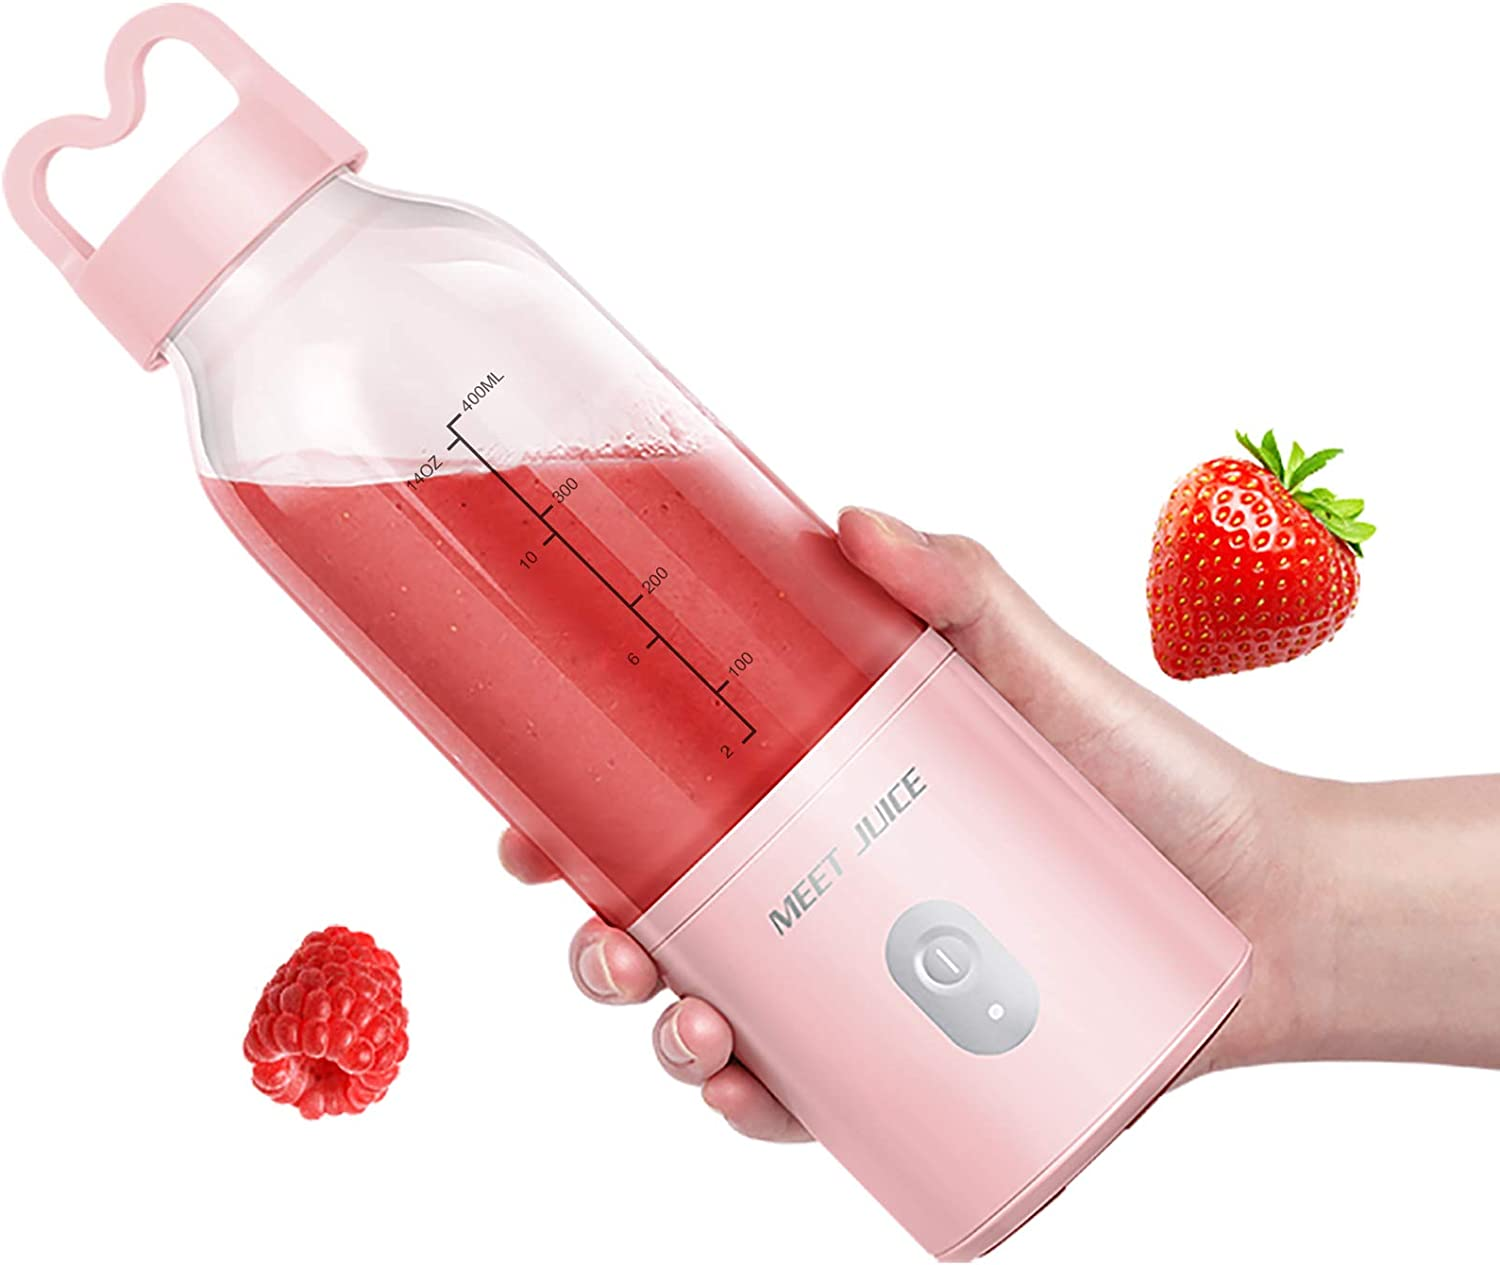 MEET JUICE Portable Blender Personal Size with USB Wire Rechargeable Mini Blender Good Choice Making Shakes and Smoothies